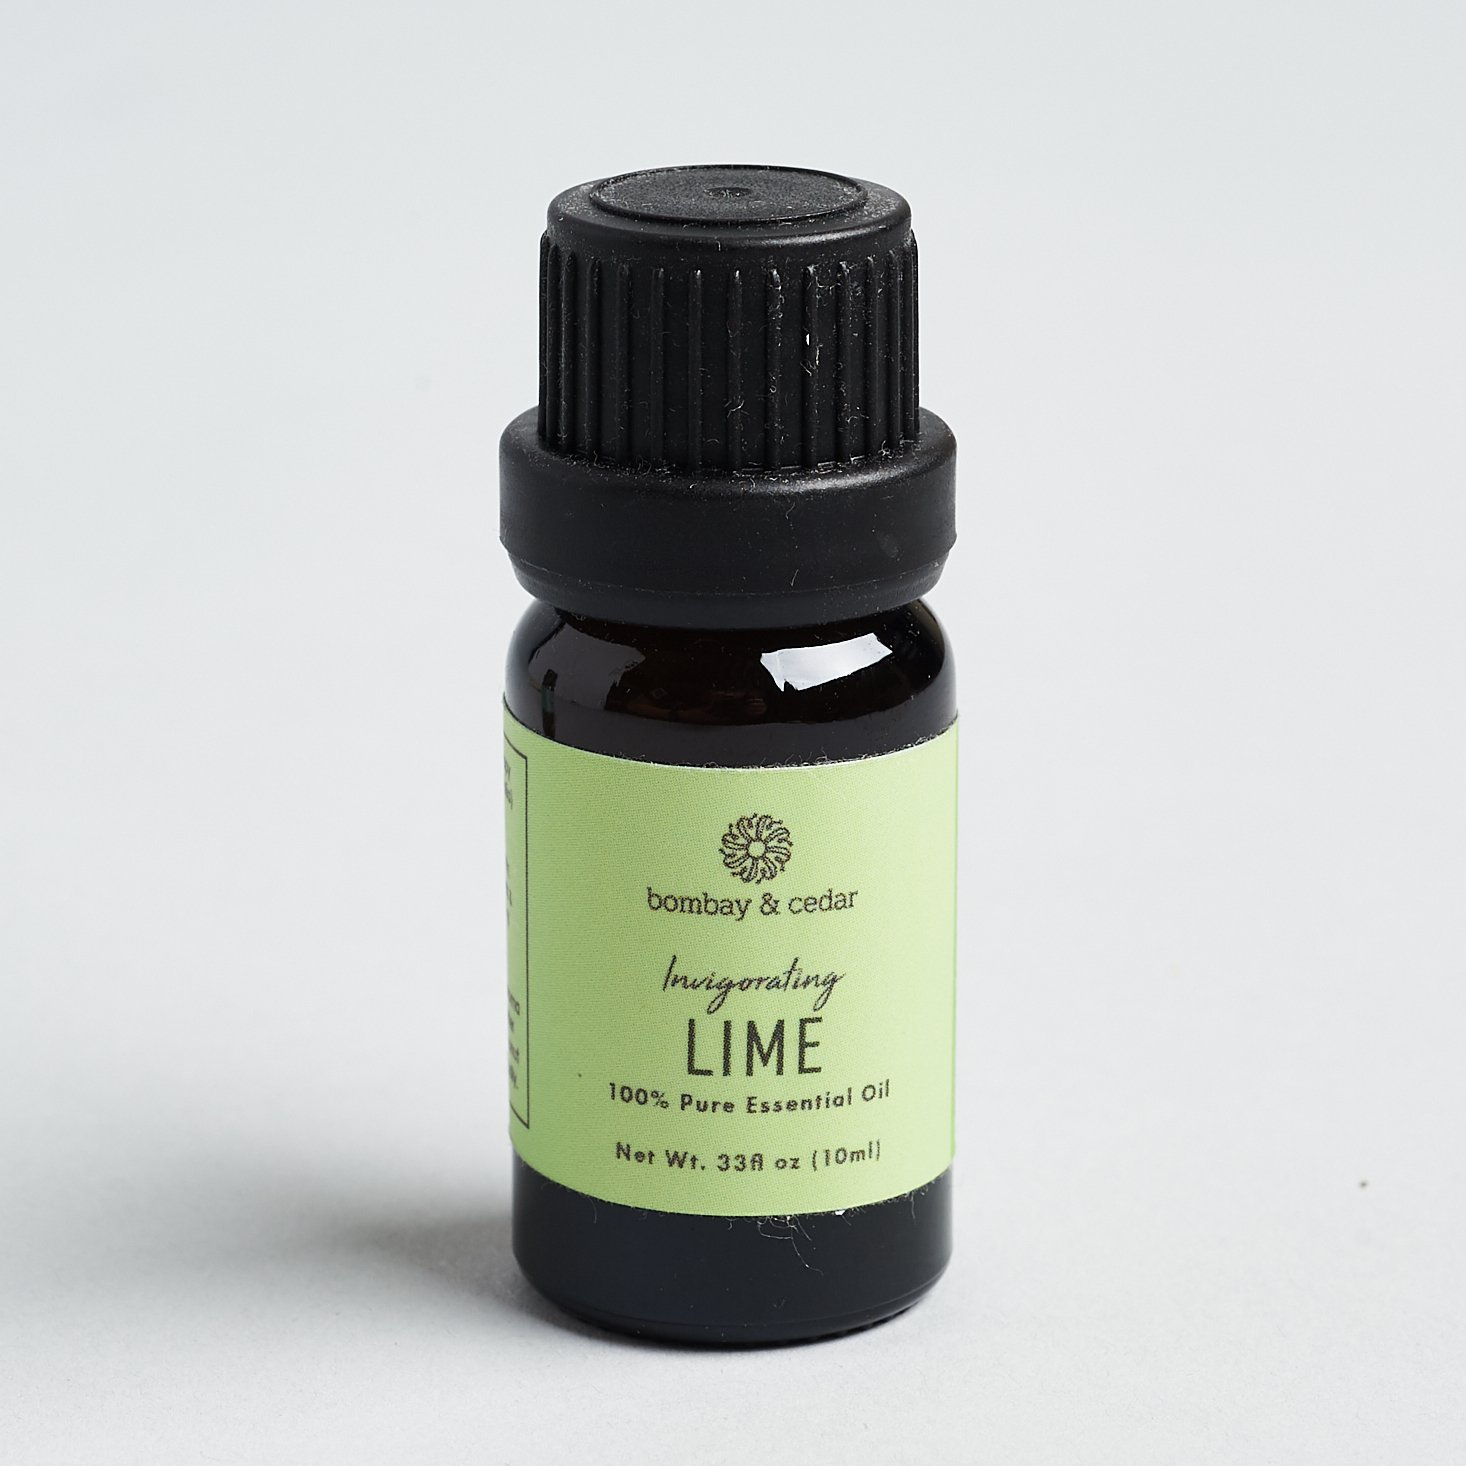 lime oil in amber glass with green label